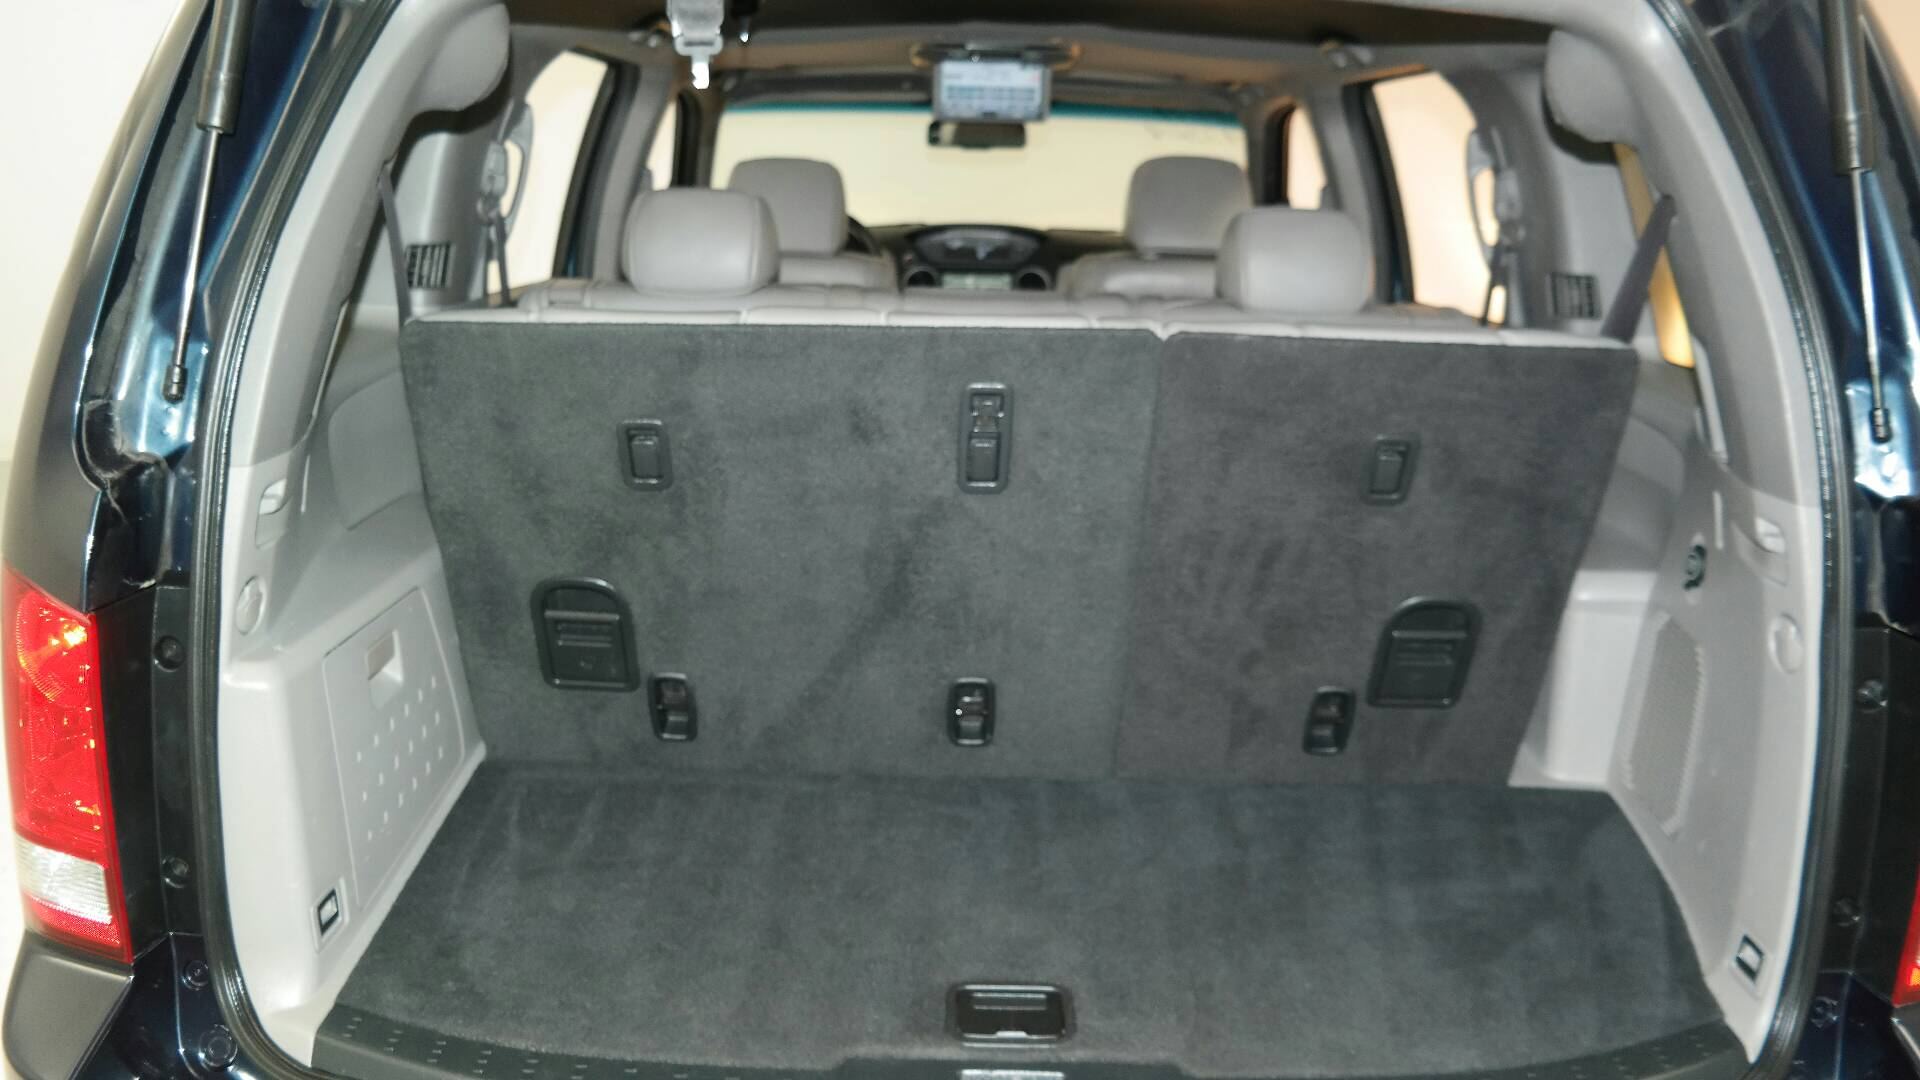 Featured 2011 Honda Pilot 4WD 4dr EX L 3rd Row Seats Used Cars In NJ Auto Auction Trunk Storage